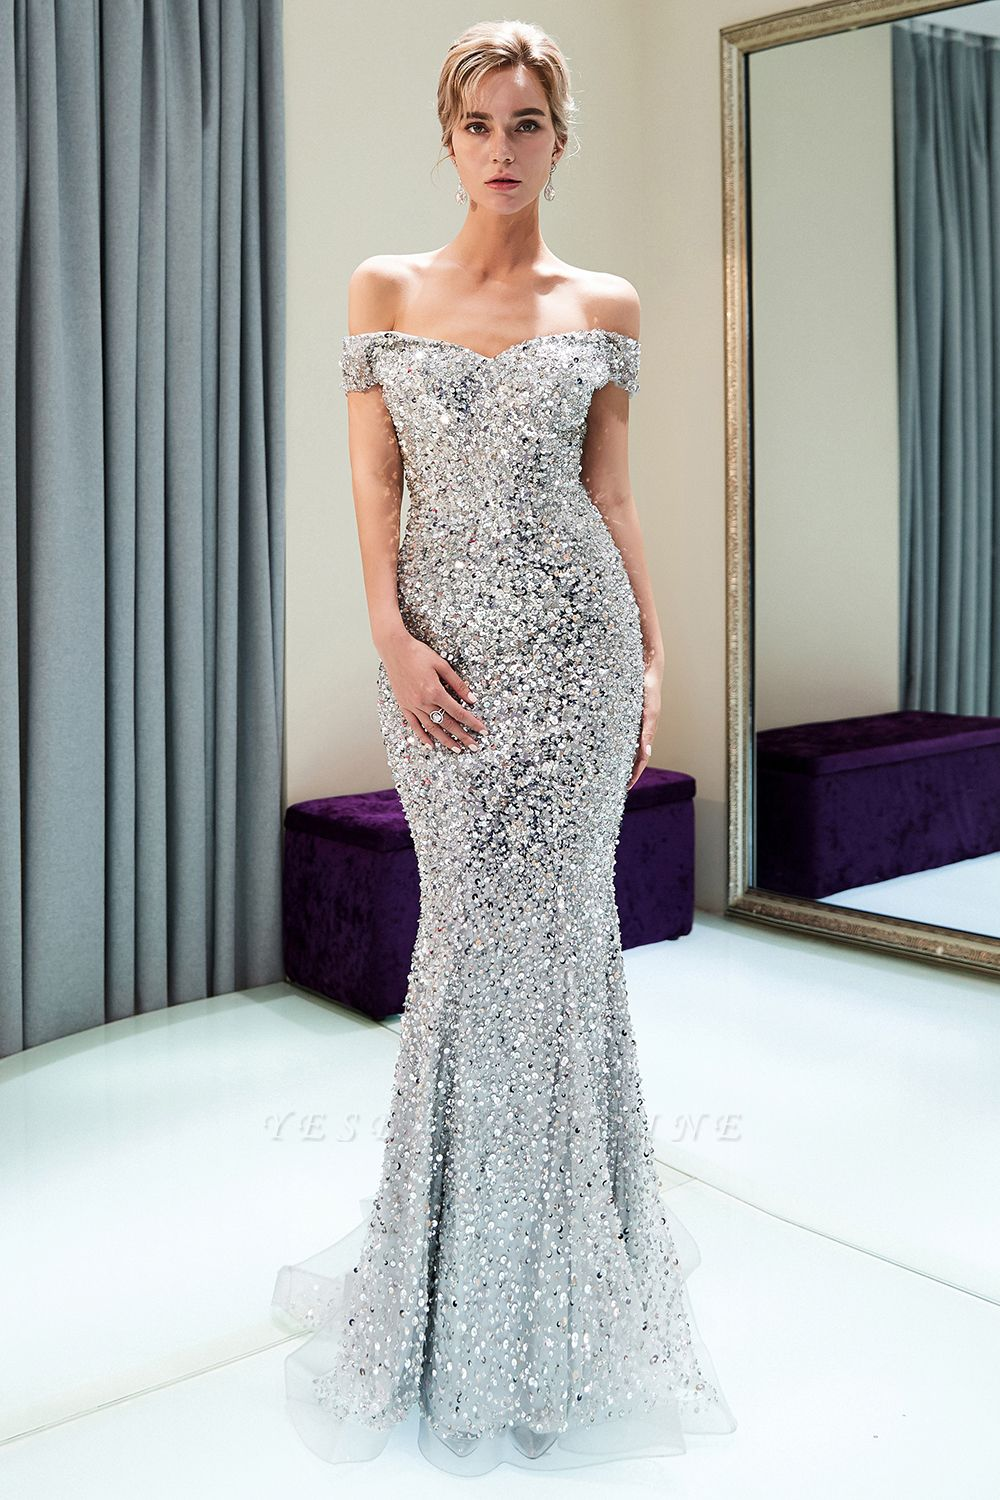 Mermaid Silver Sequins Off-the-shoulder Long Prom Dress | 2019 Evening Dress